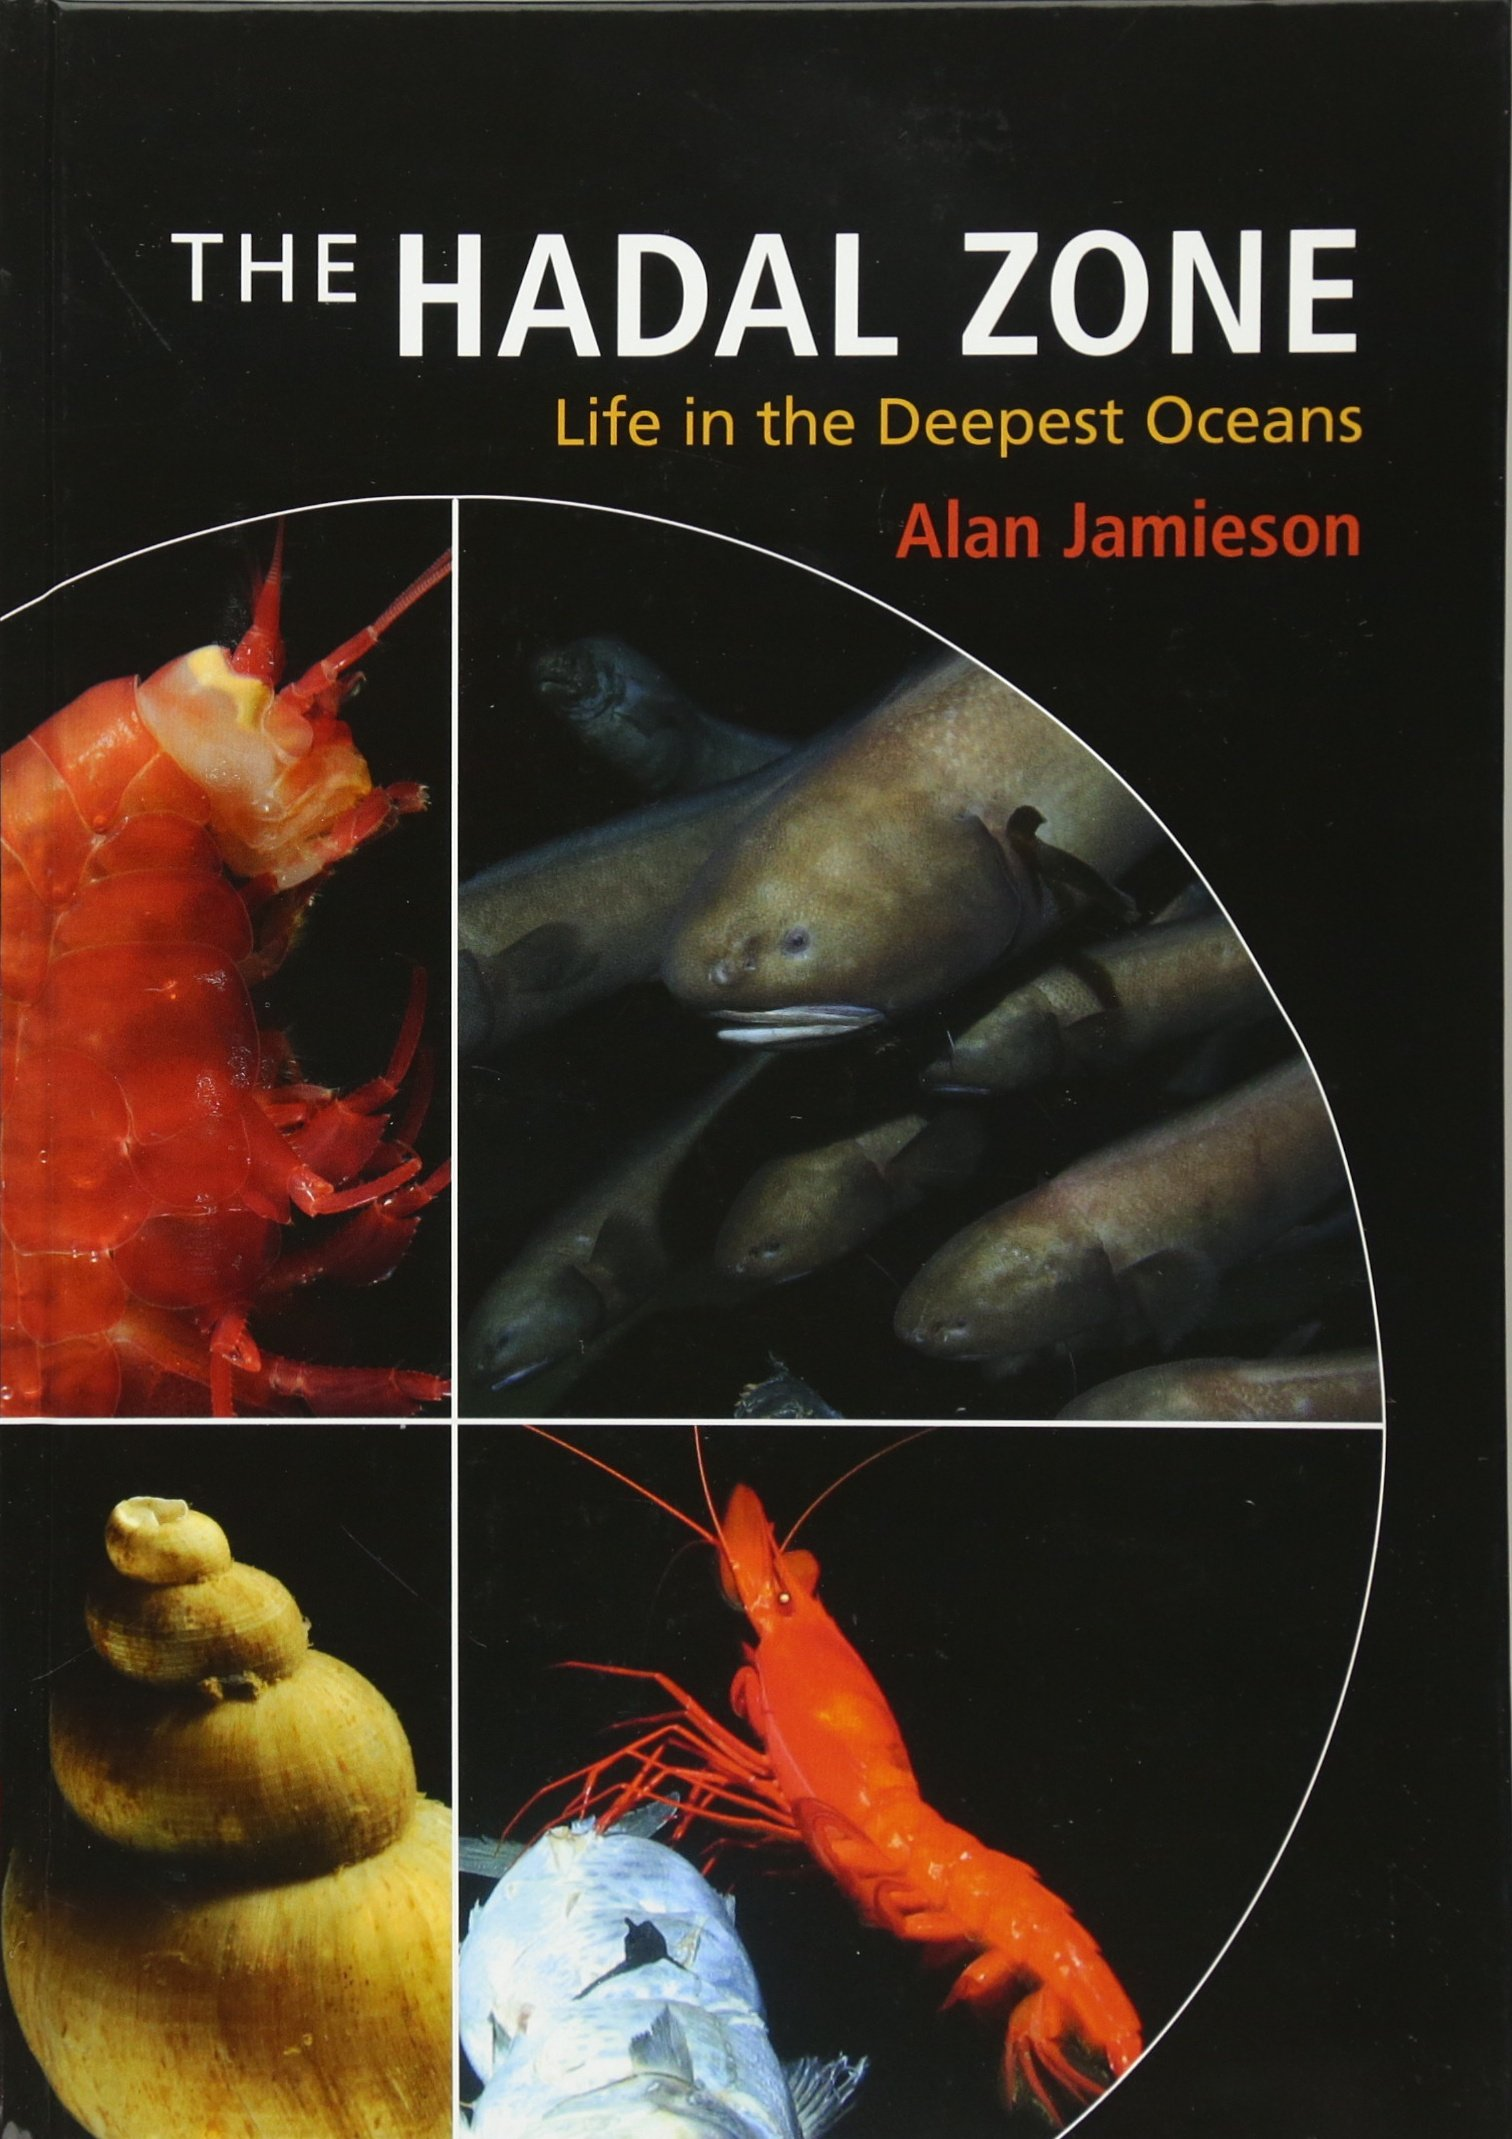 The Hadal Zone: Life in the Deepest Oceans: Amazon.co.uk: Jamieson, Alan:  9781107016743: Books